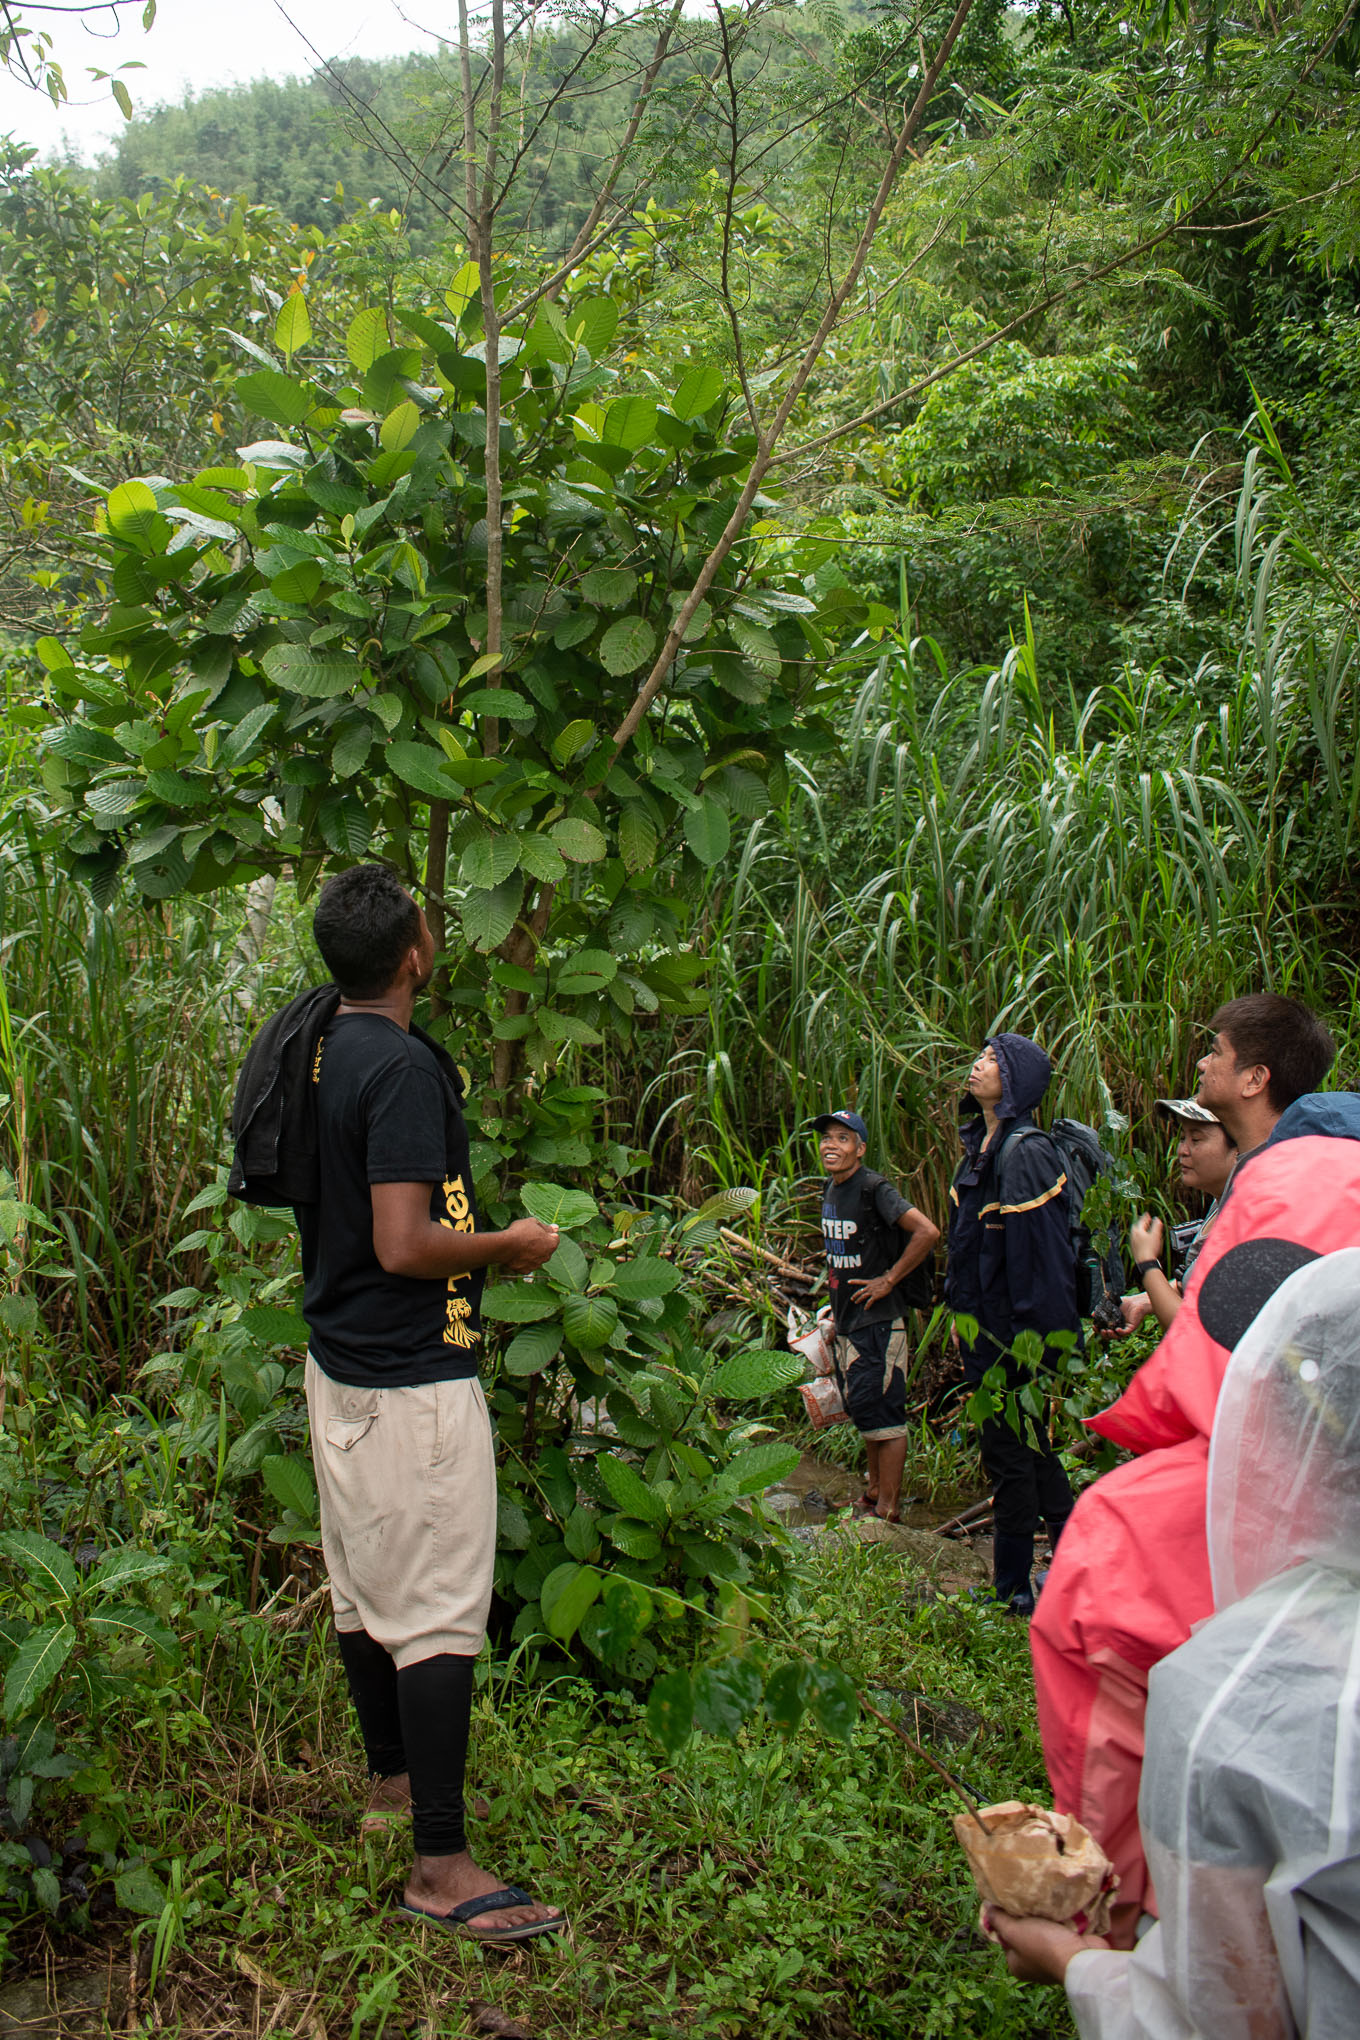 Guided Hike in Mt. Mapalad with Dumagat with discussions on native trees & forests